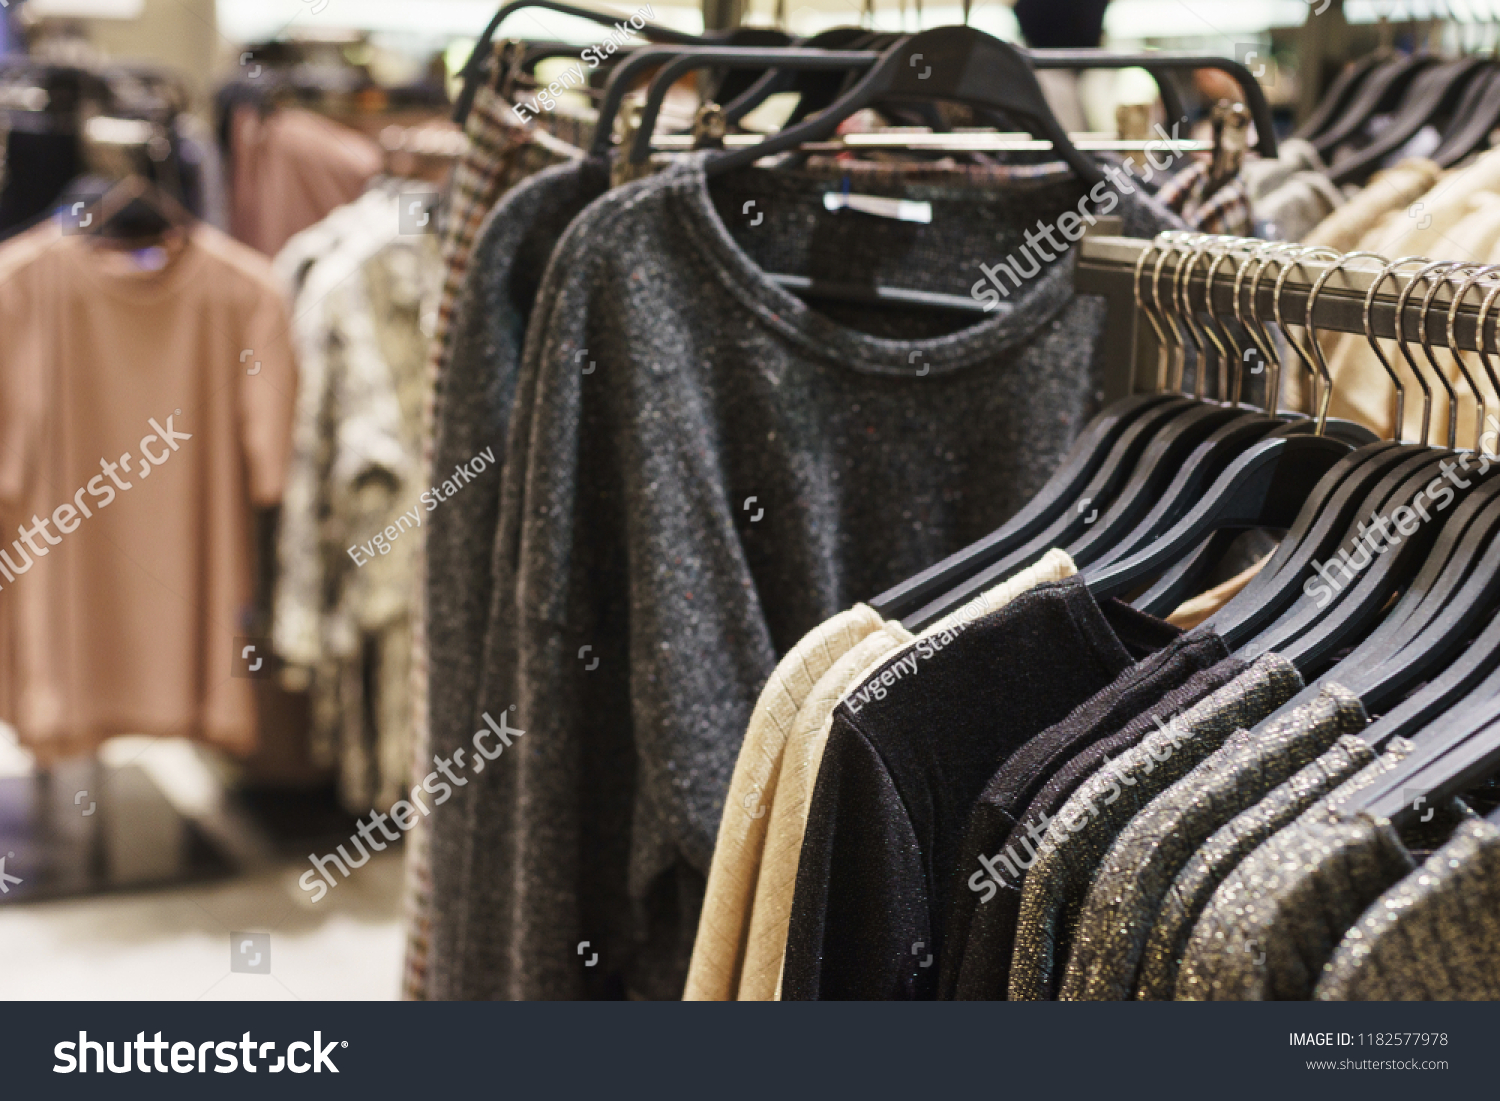 7bed81e65d5 Fashionable men s and women s clothing on wooden hangers in a modern clothing  store. Stylish clothes